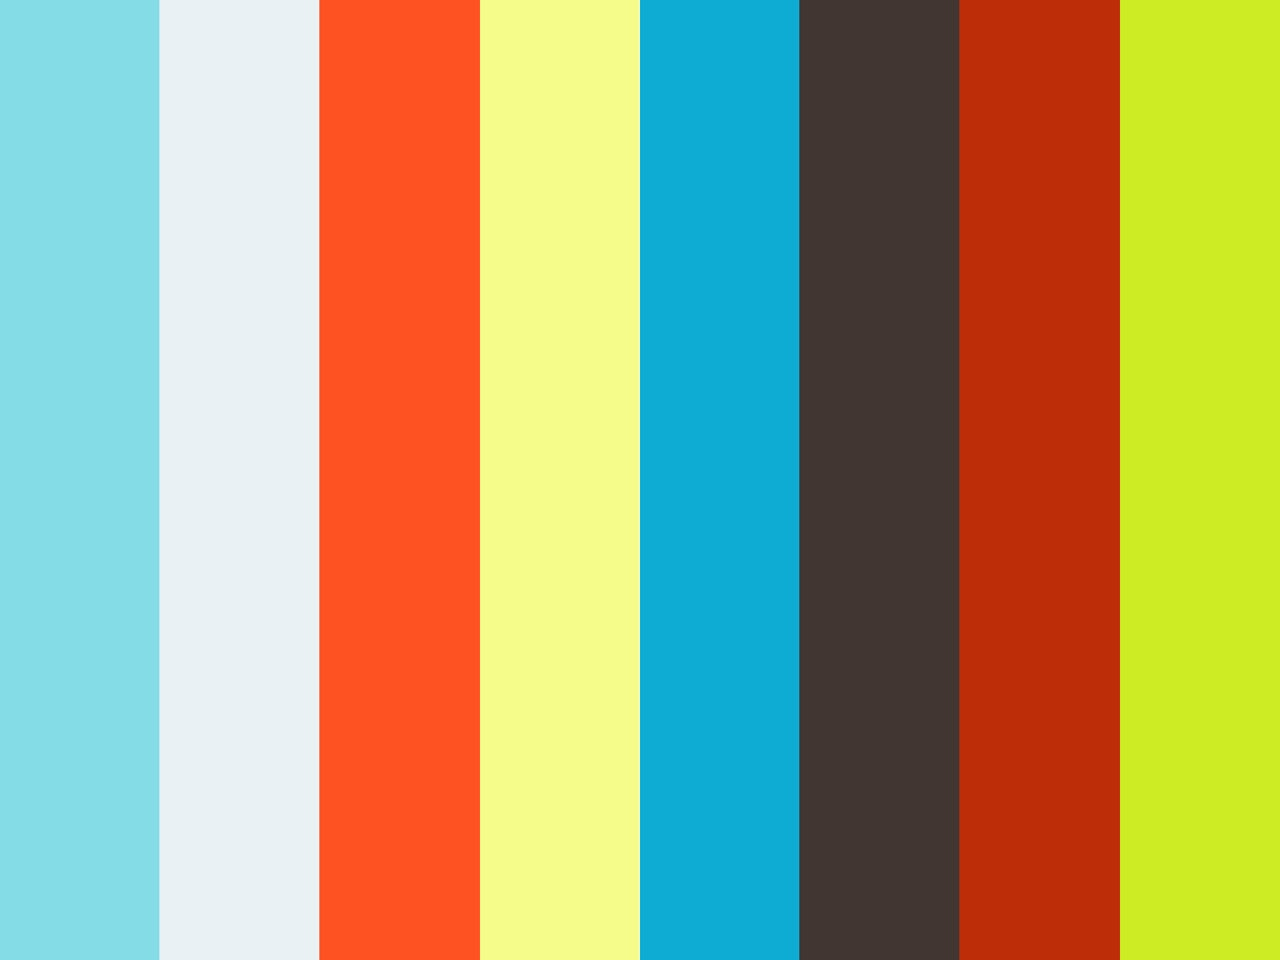 Easter 2019 - All Things New